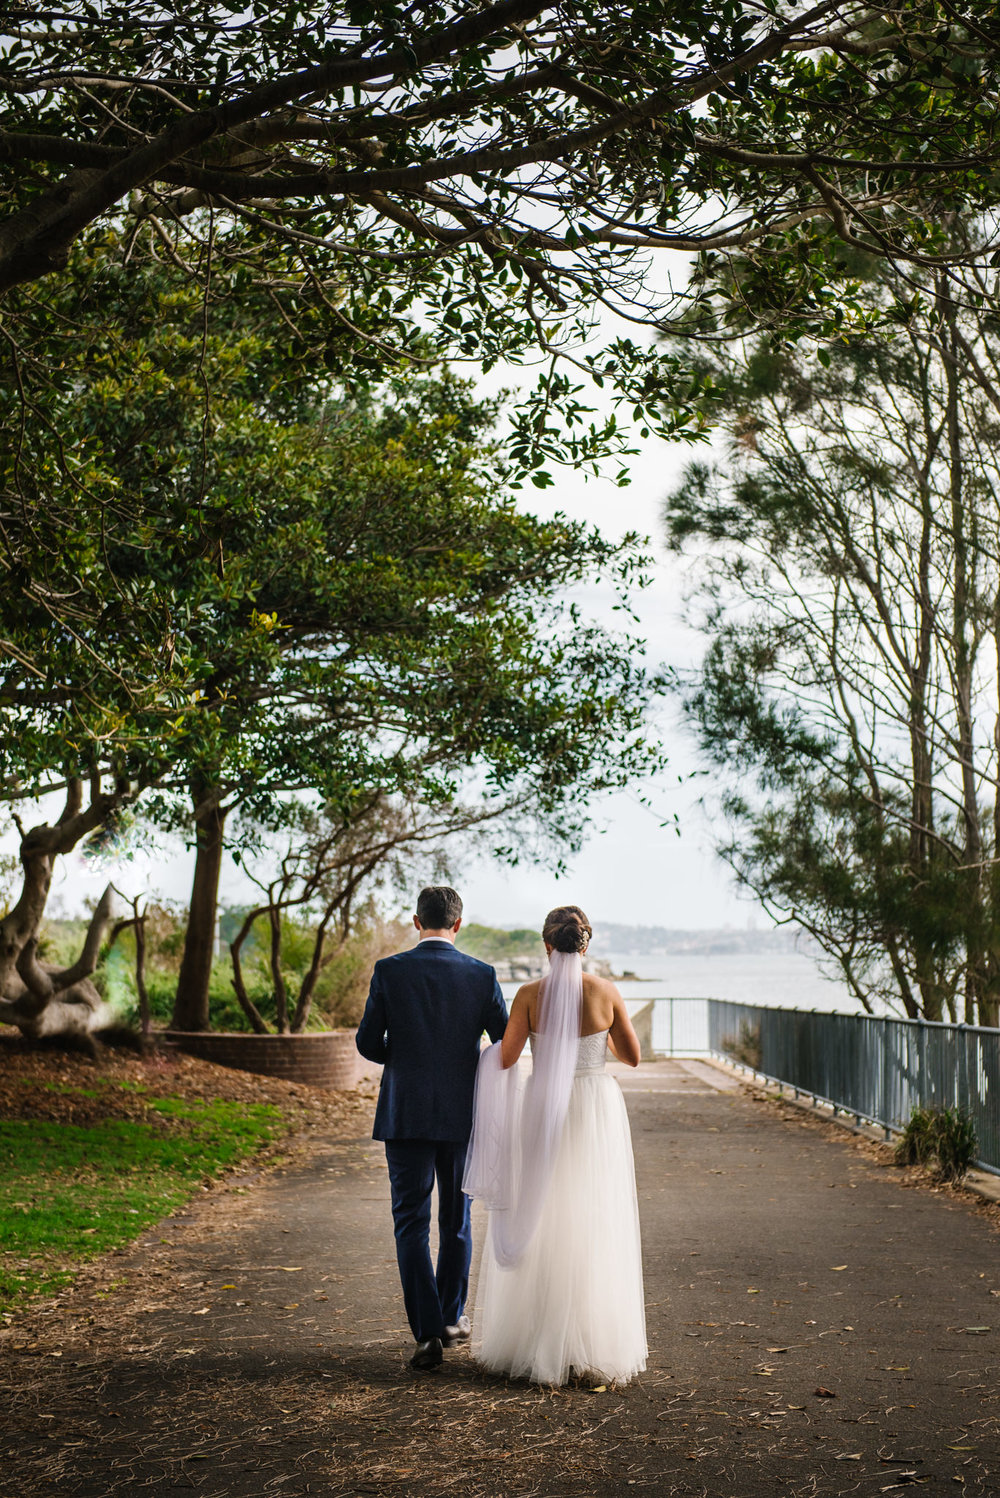 Bride and groom walking down aisle of trees at Little Manly